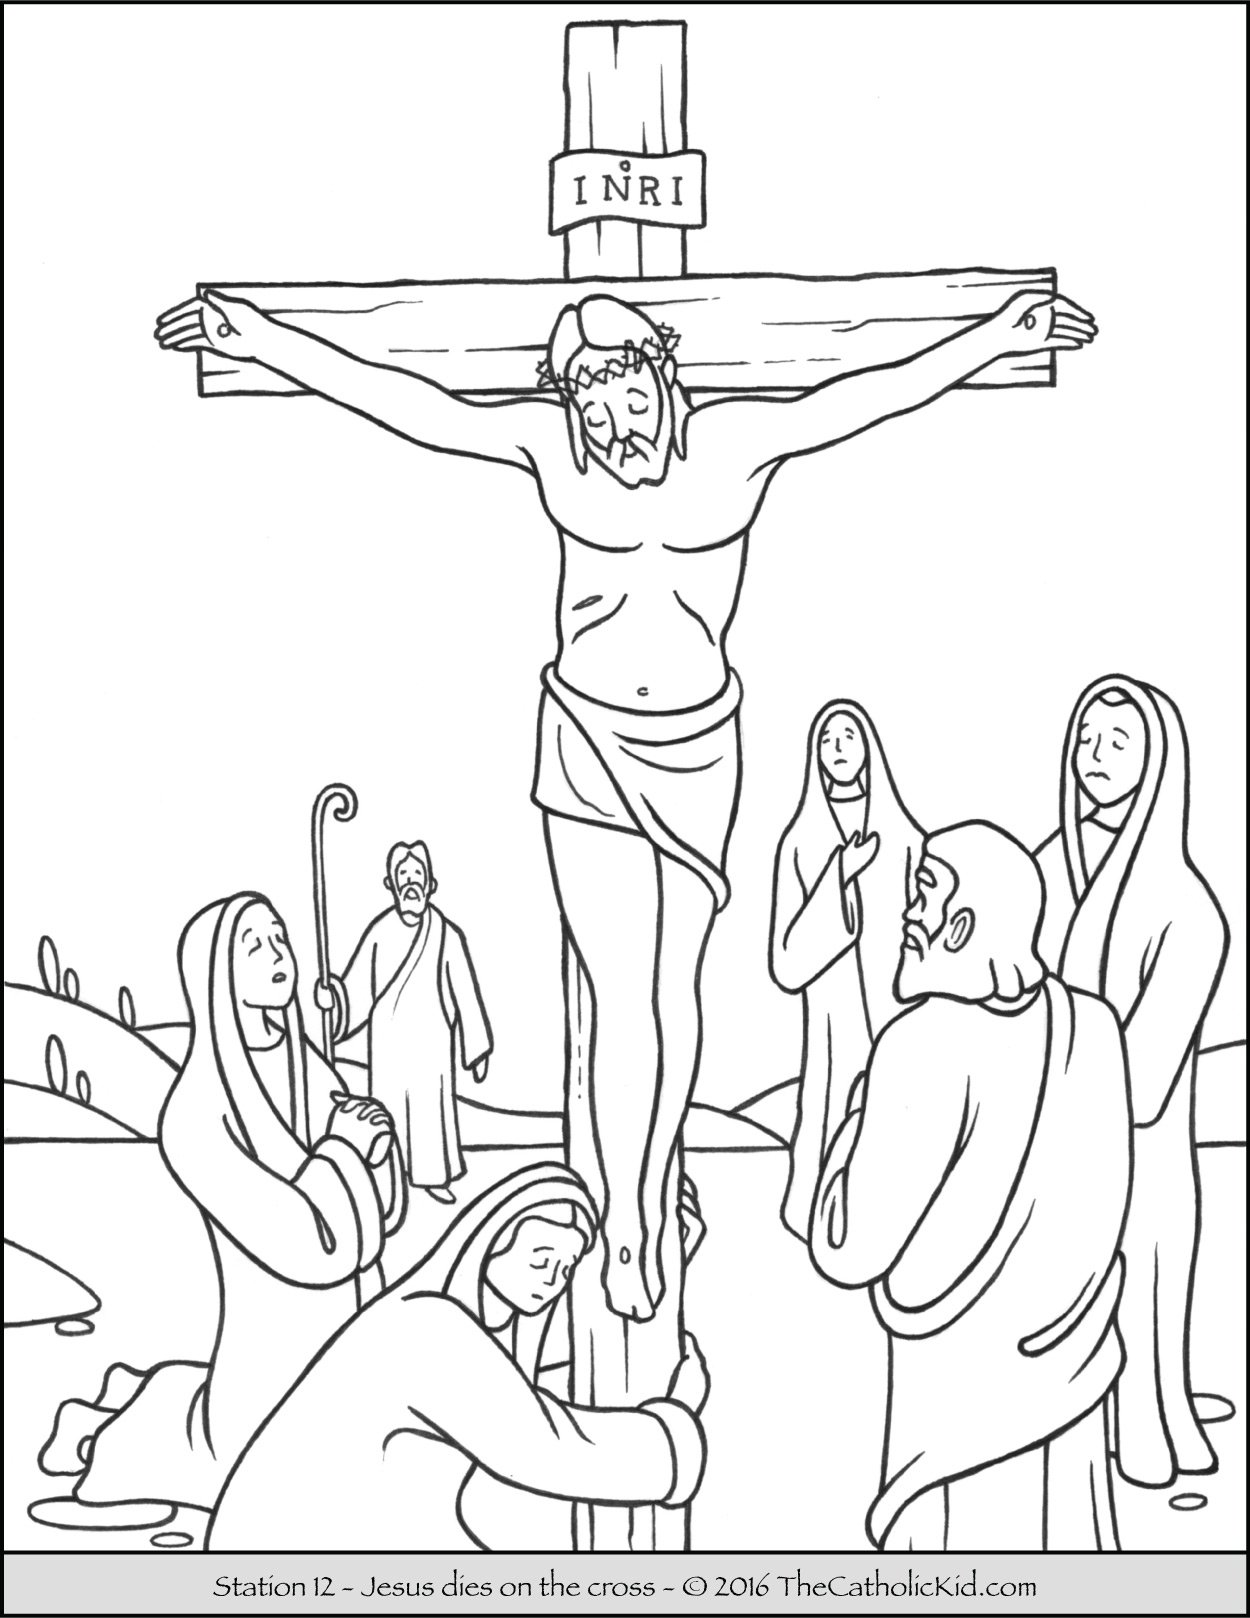 Stations 12th Jesus Dies Coloring The Catholic